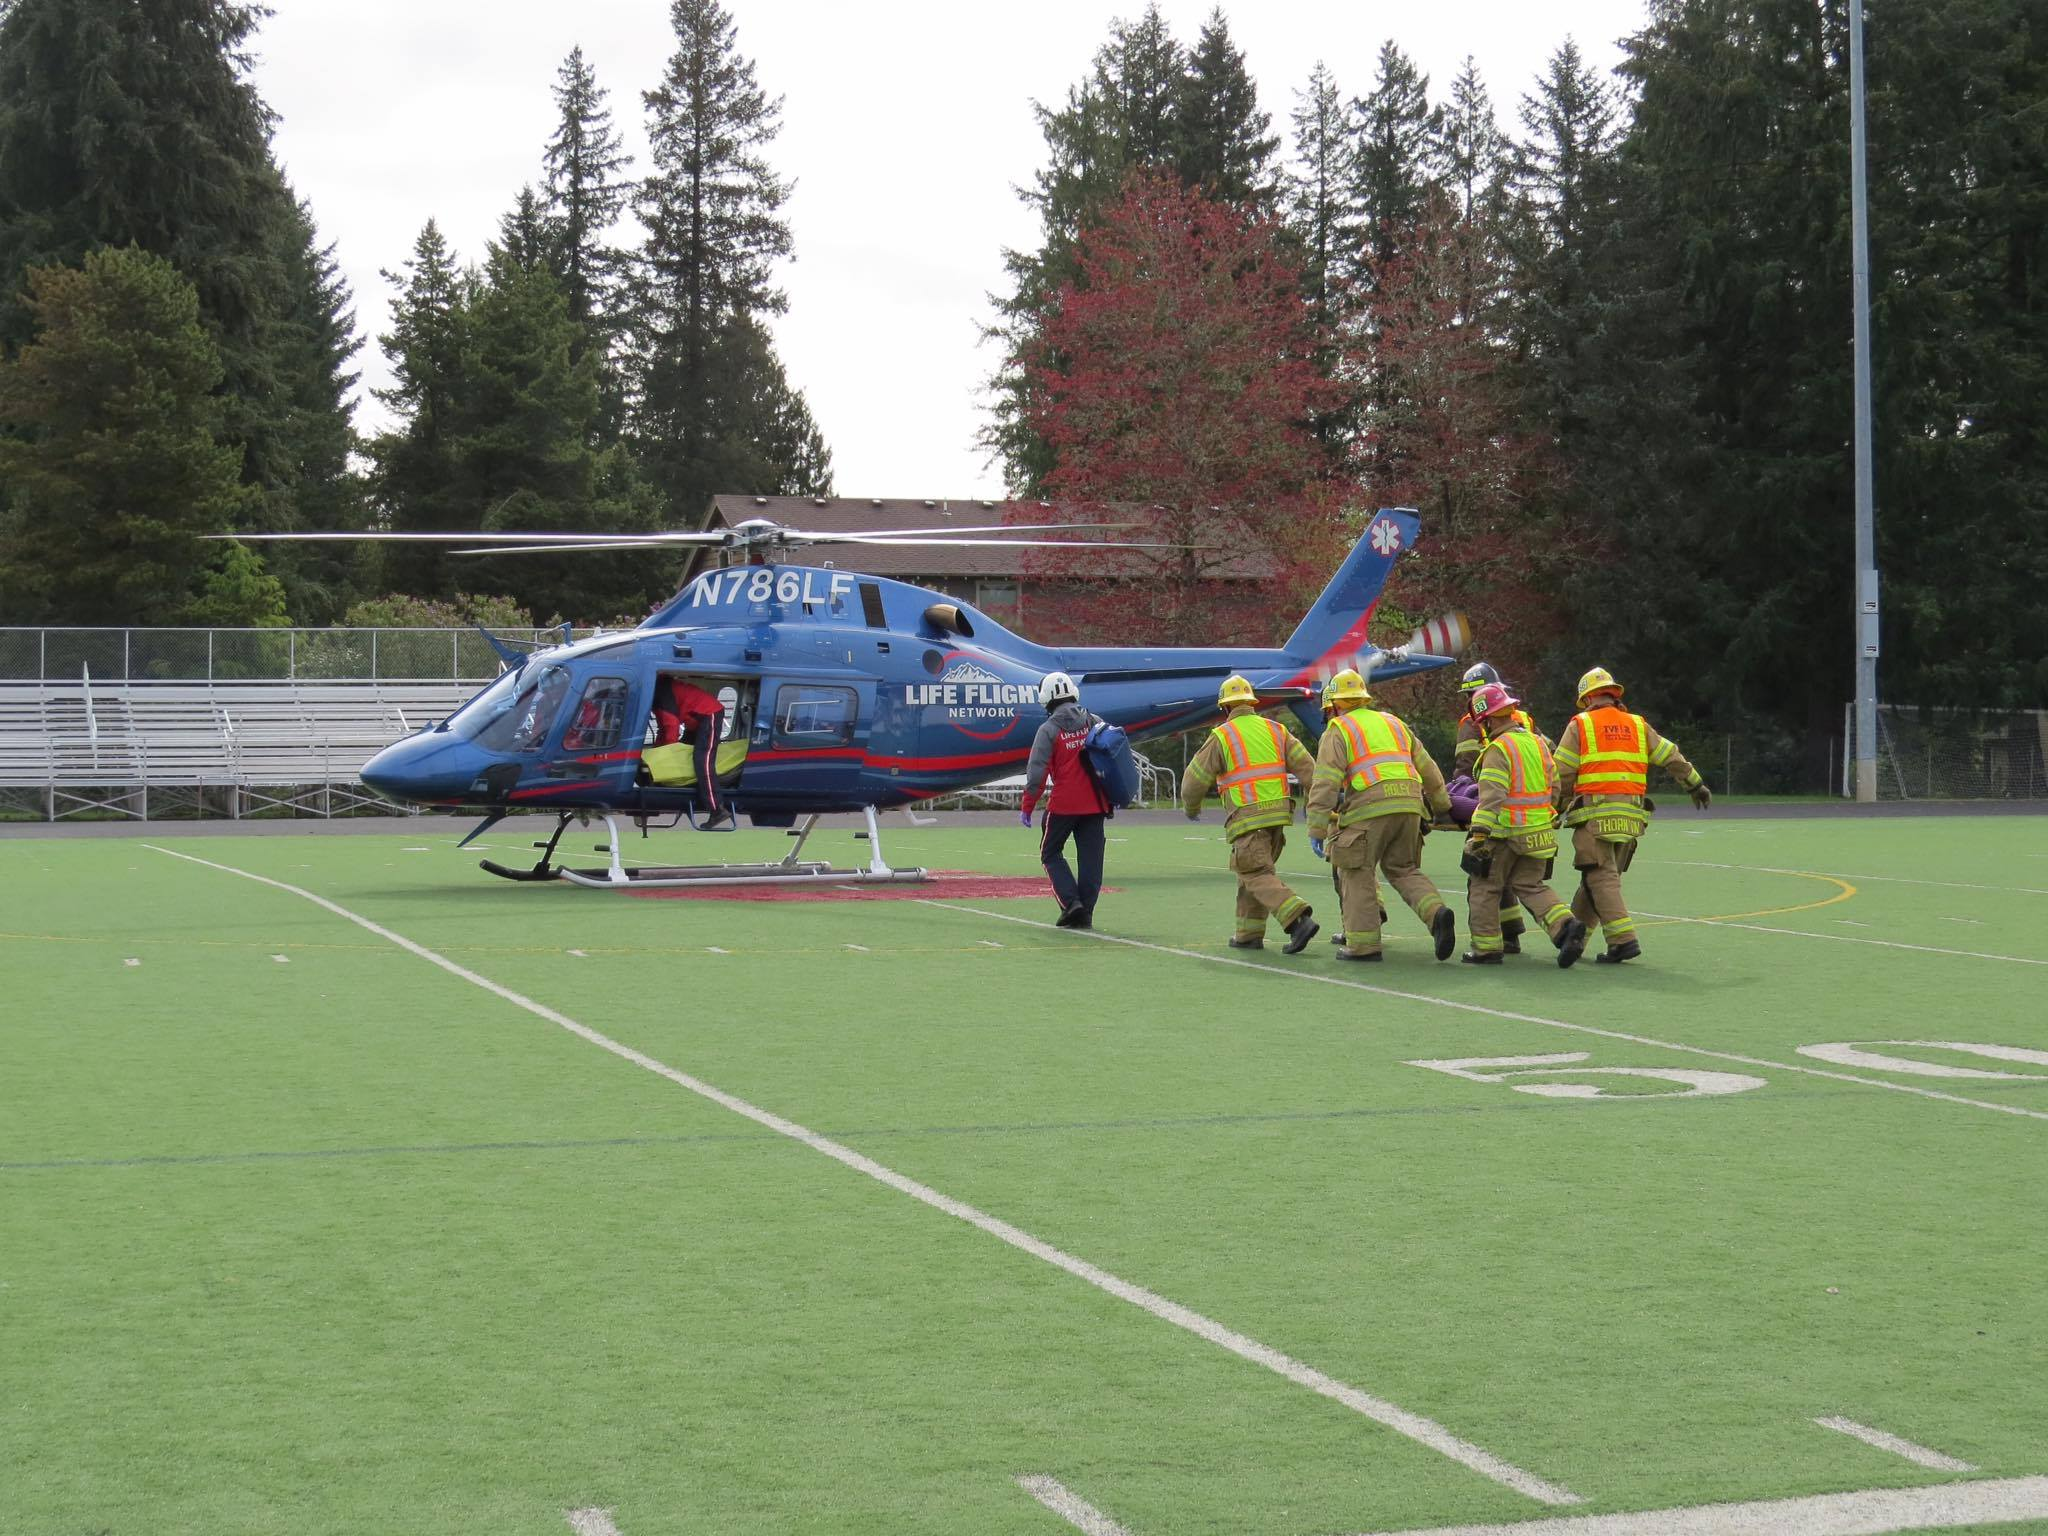 skid lifeflight